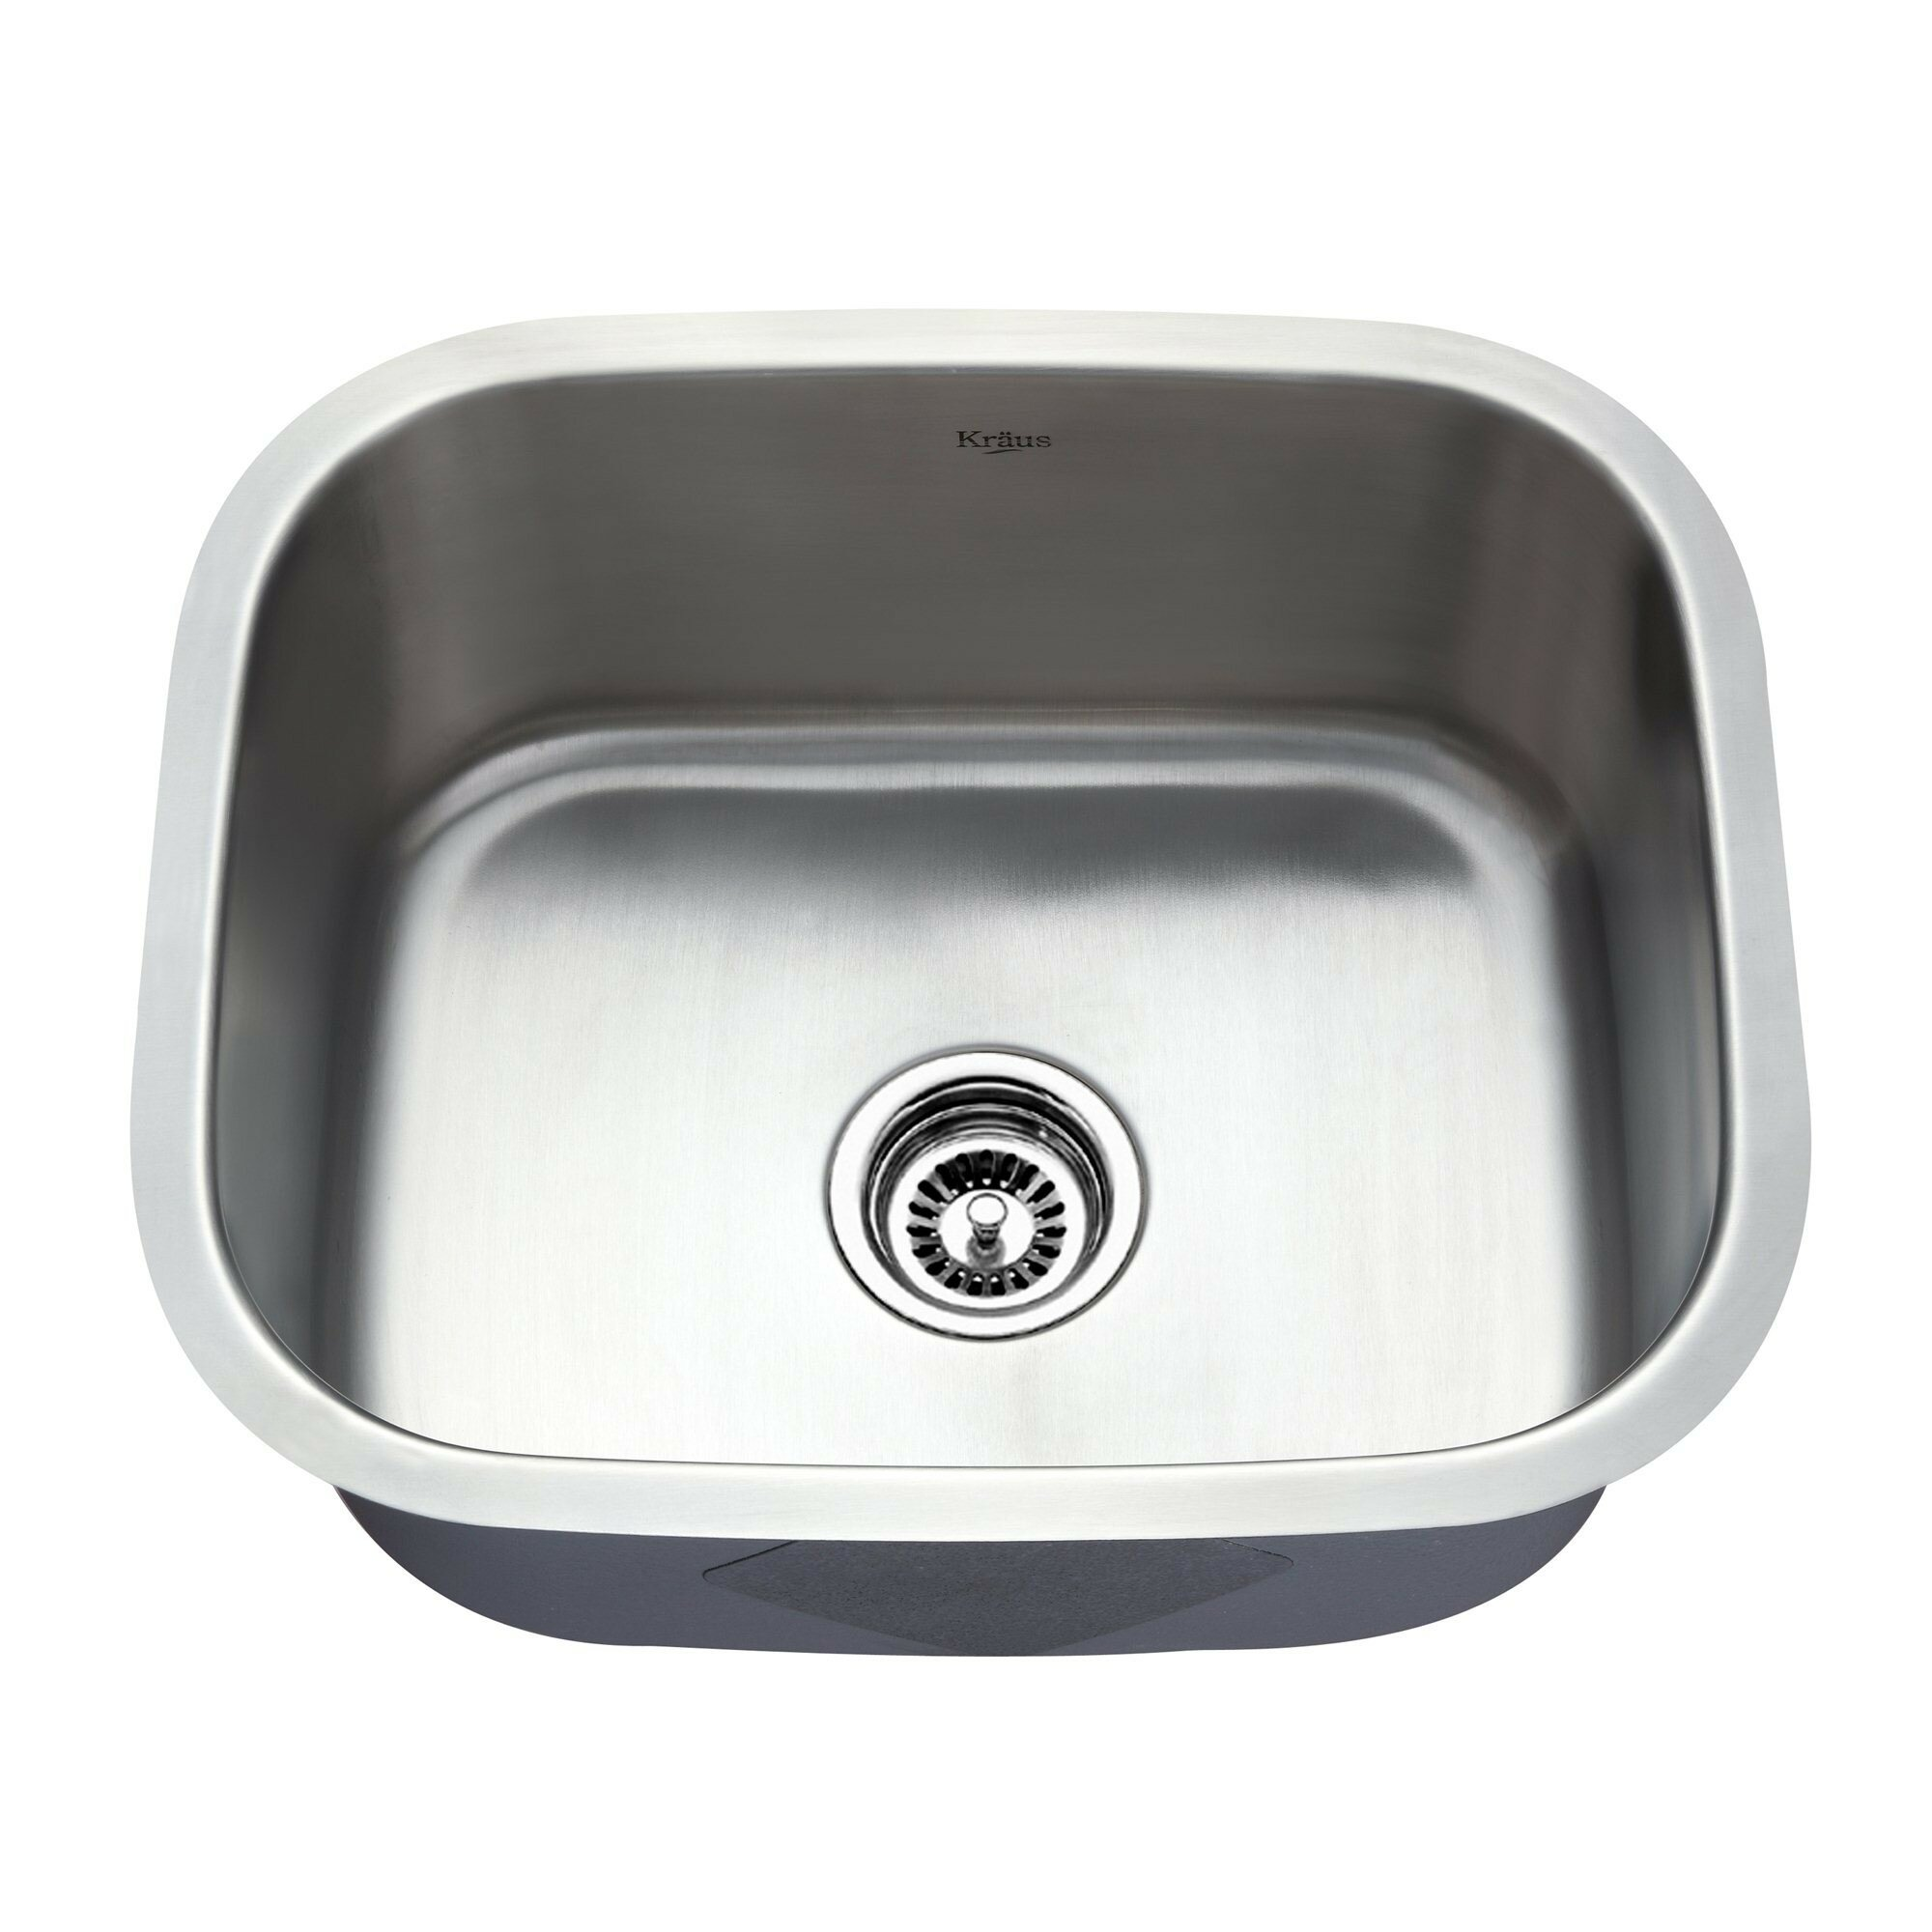 Kitchen Sink Baskets Stainless Steel | Kitchen Sinks Stainless Steel | Stainless Steel Kitchen Sinks 33 X 22